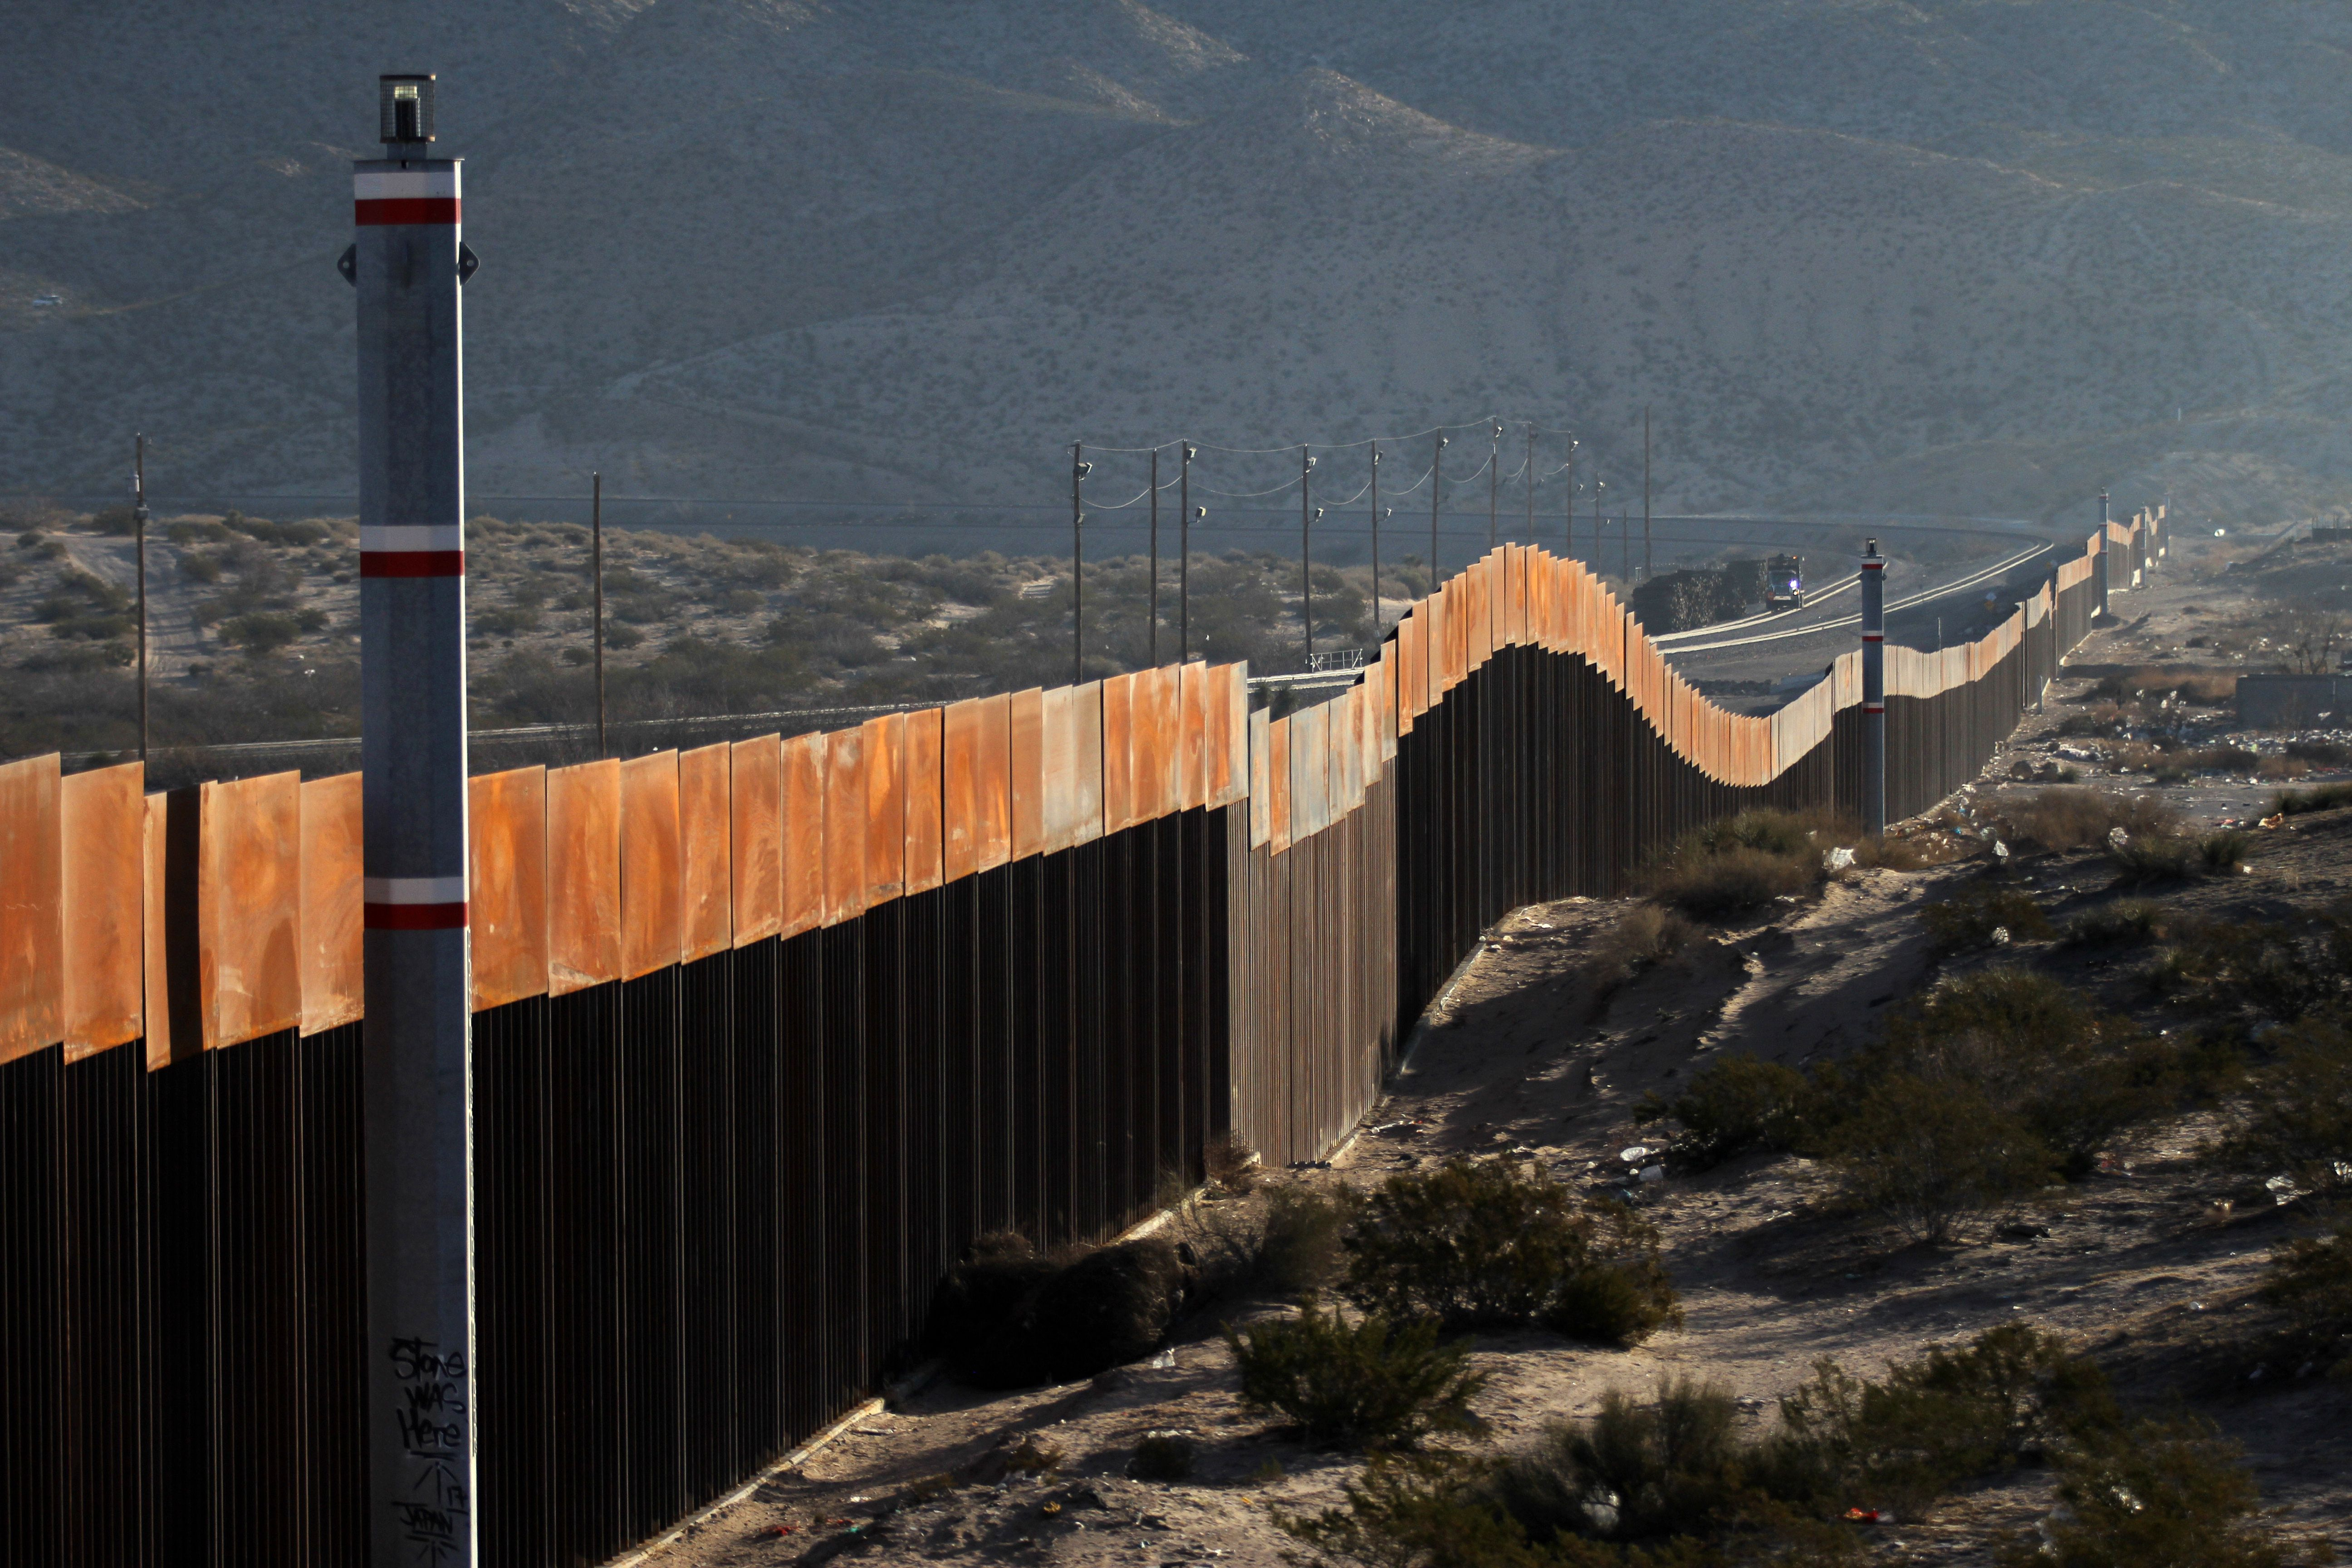 A view of the border wall between Mexico and the United States, in Ciudad Juarez, Chihuahua state, Mexico. (HERIKA MARTINEZ/AFP via Getty Images)